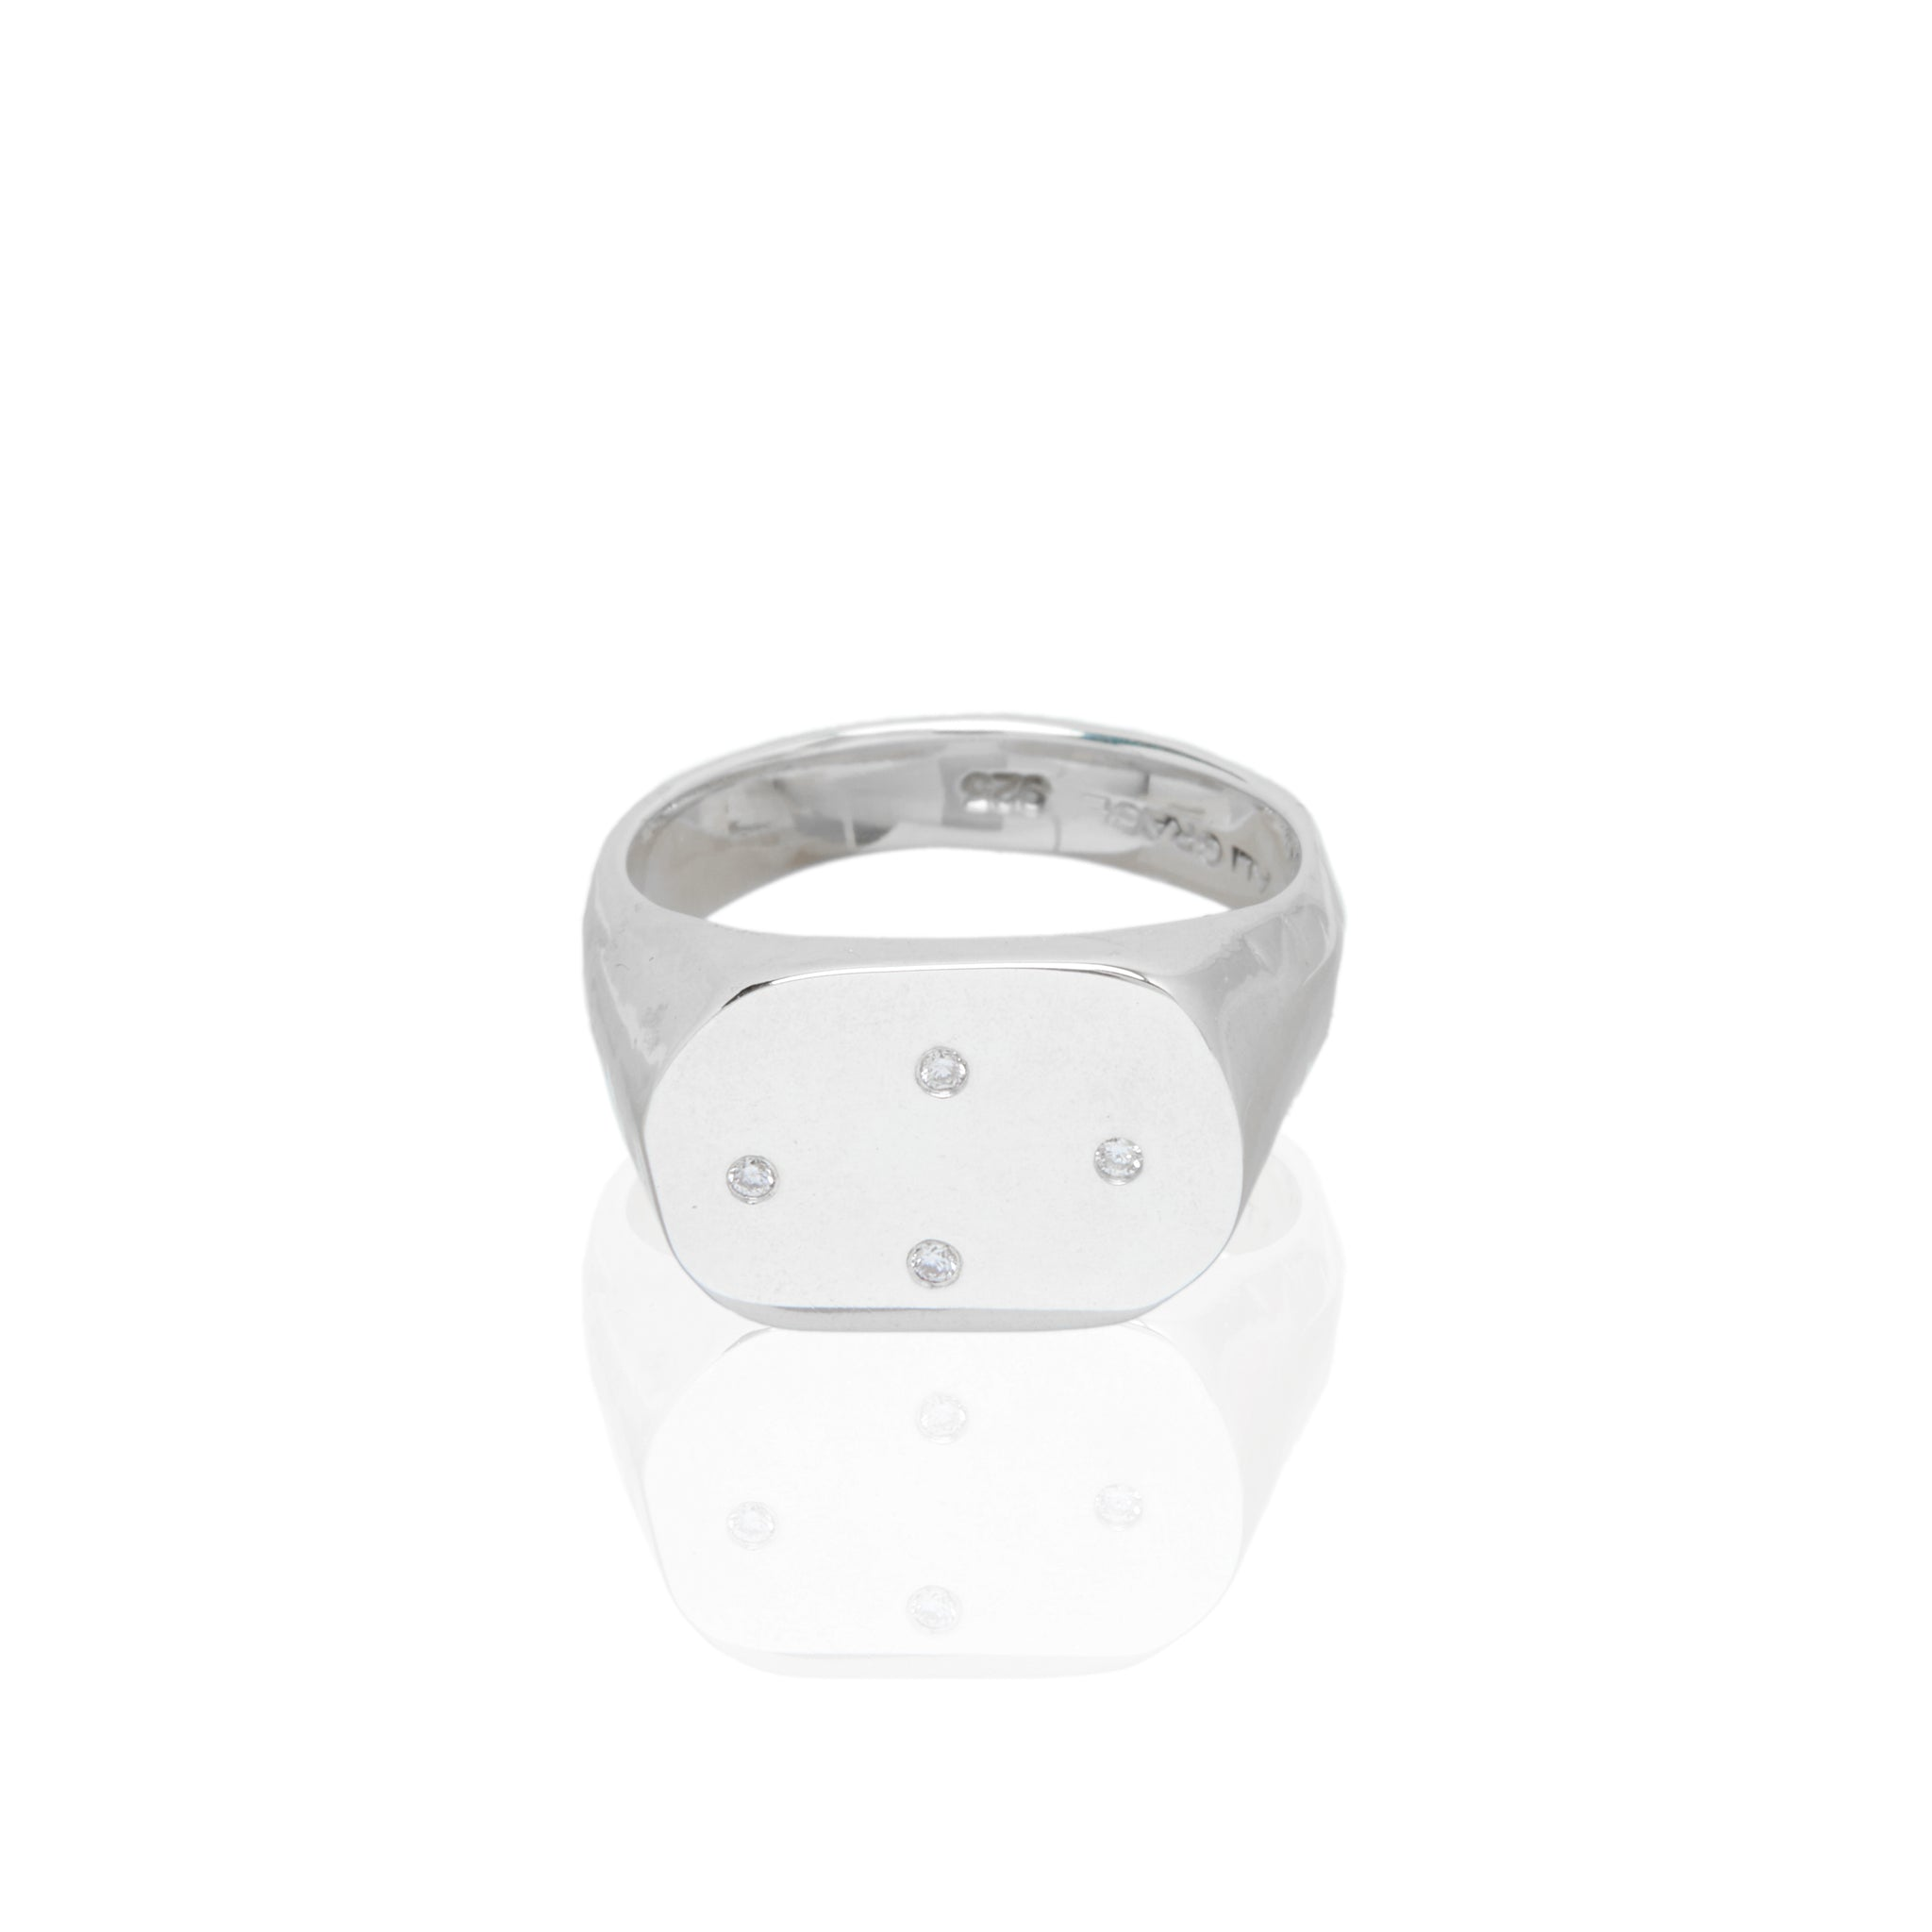 sterling silver diamond ring handmade fashion blogger vogue style barneys